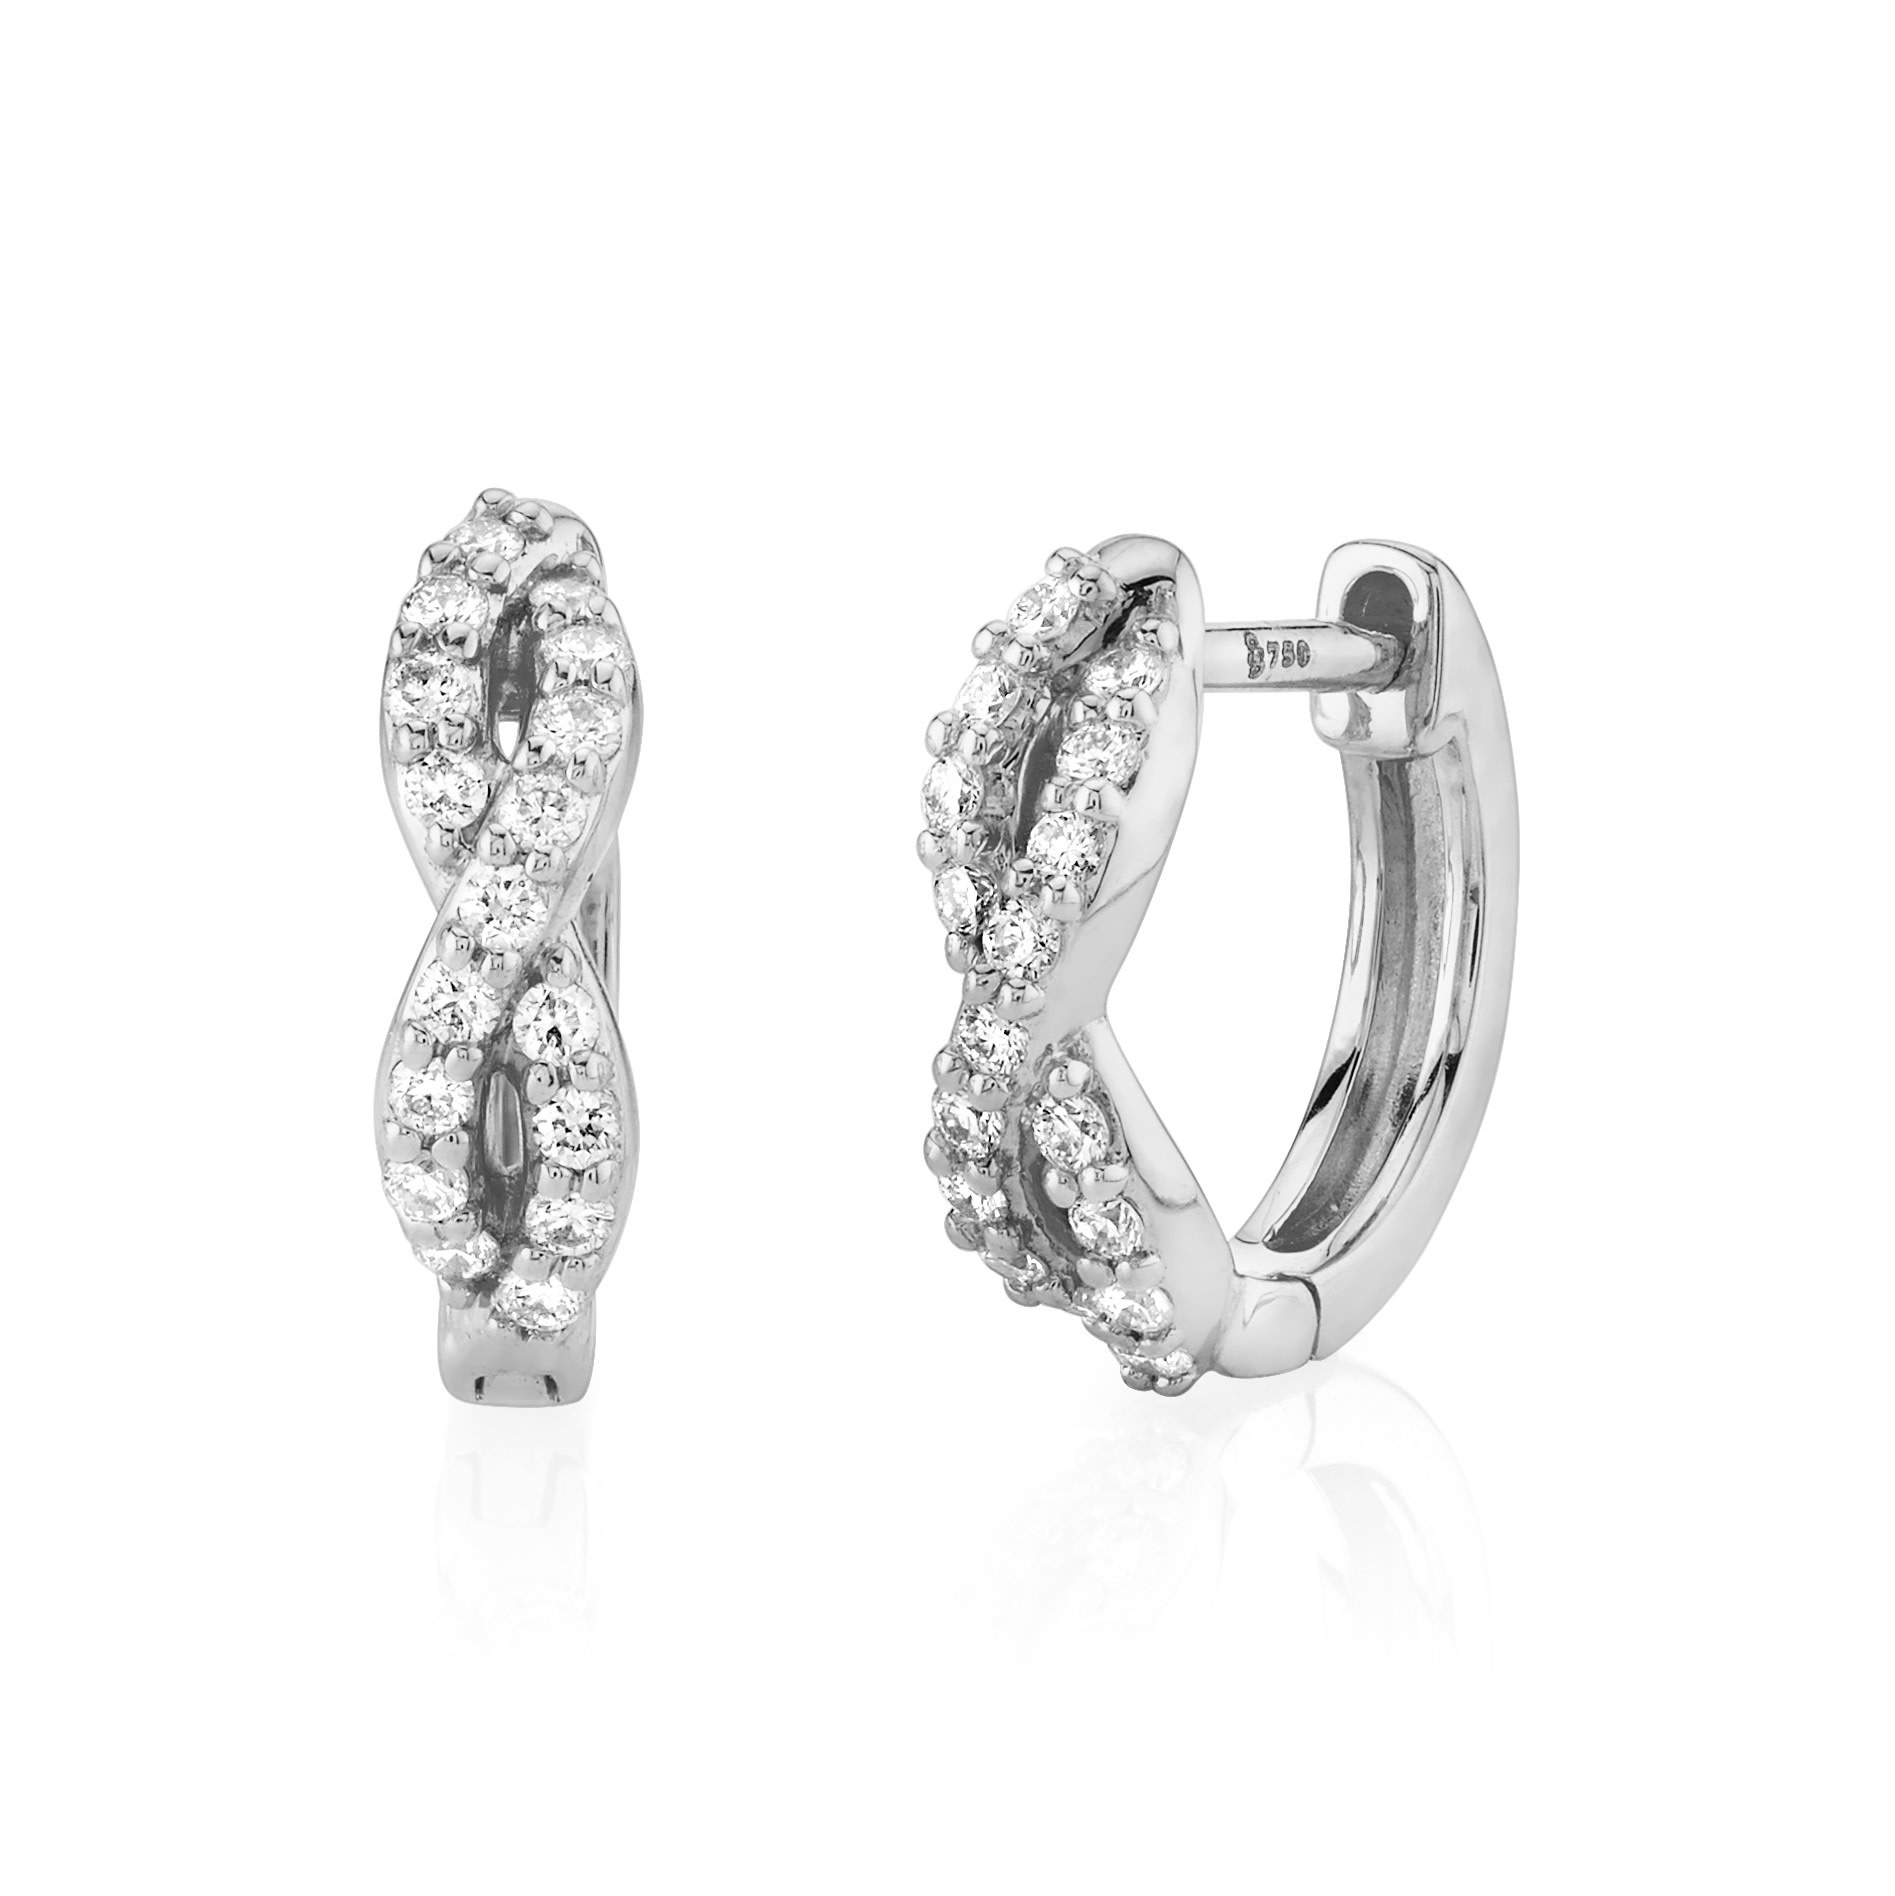 White Gold Braided Huggie Hoop Earrings